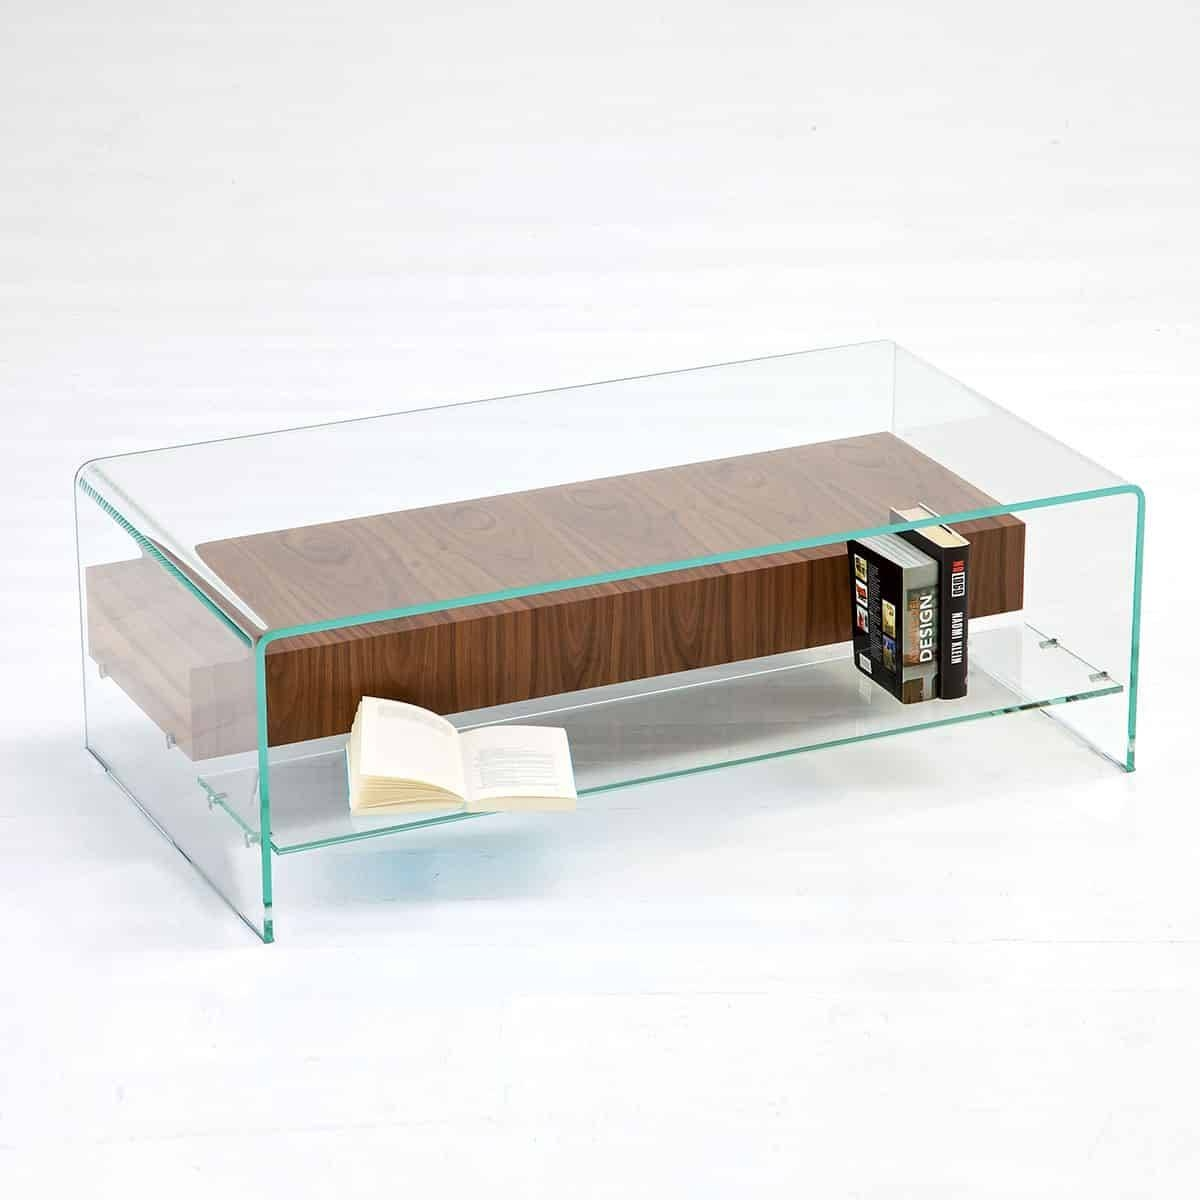 Bridge Glass Coffee Table With Shelf And Drawer - Klarity - Glass within Glass Coffee Table With Shelf (Image 2 of 15)